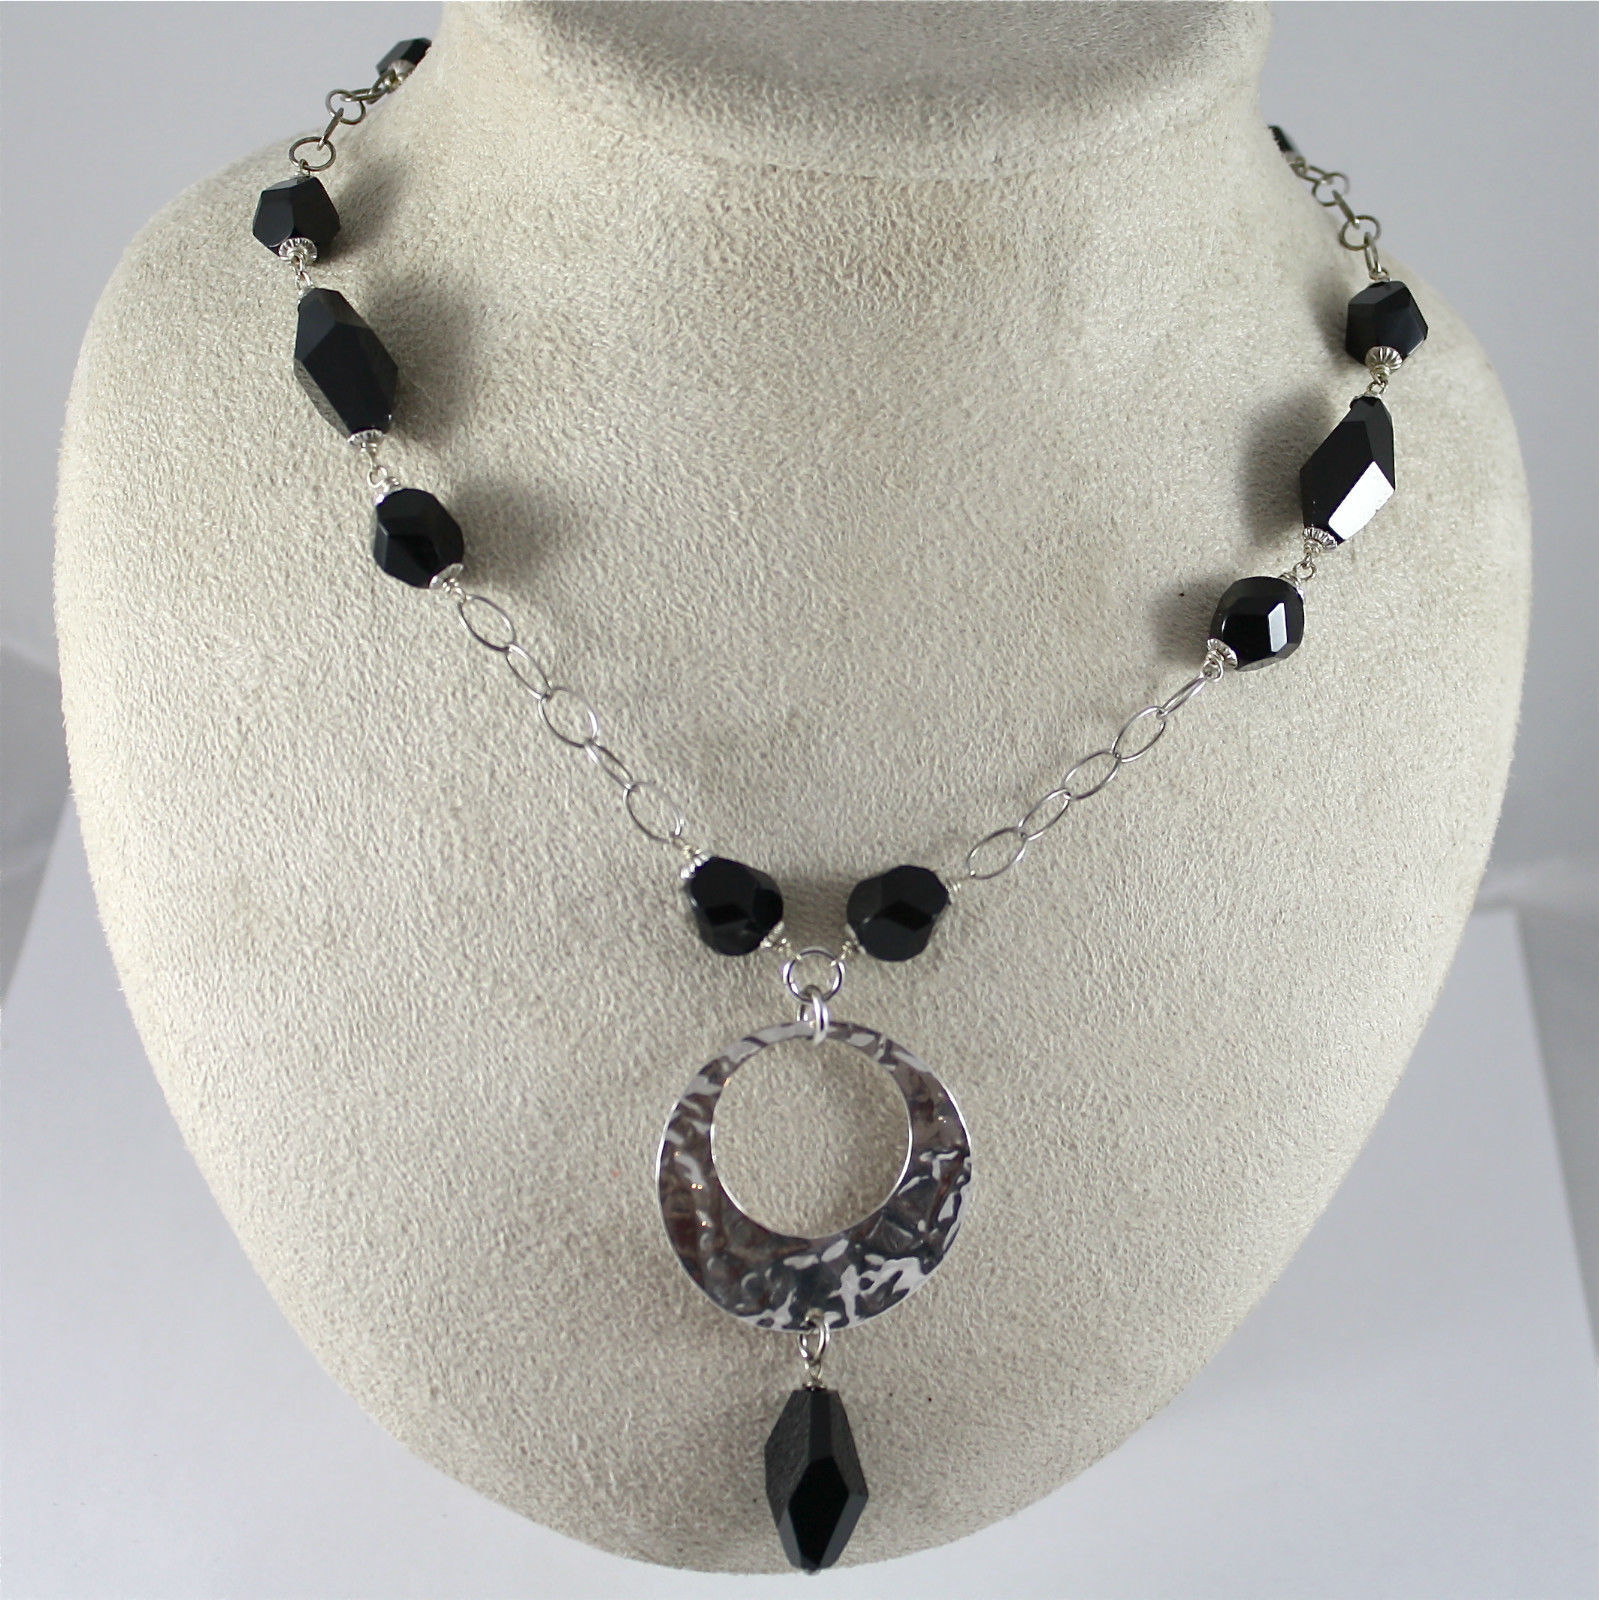 925 Silver Necklace Rhodium, Onyx Black, Pendant Hammered